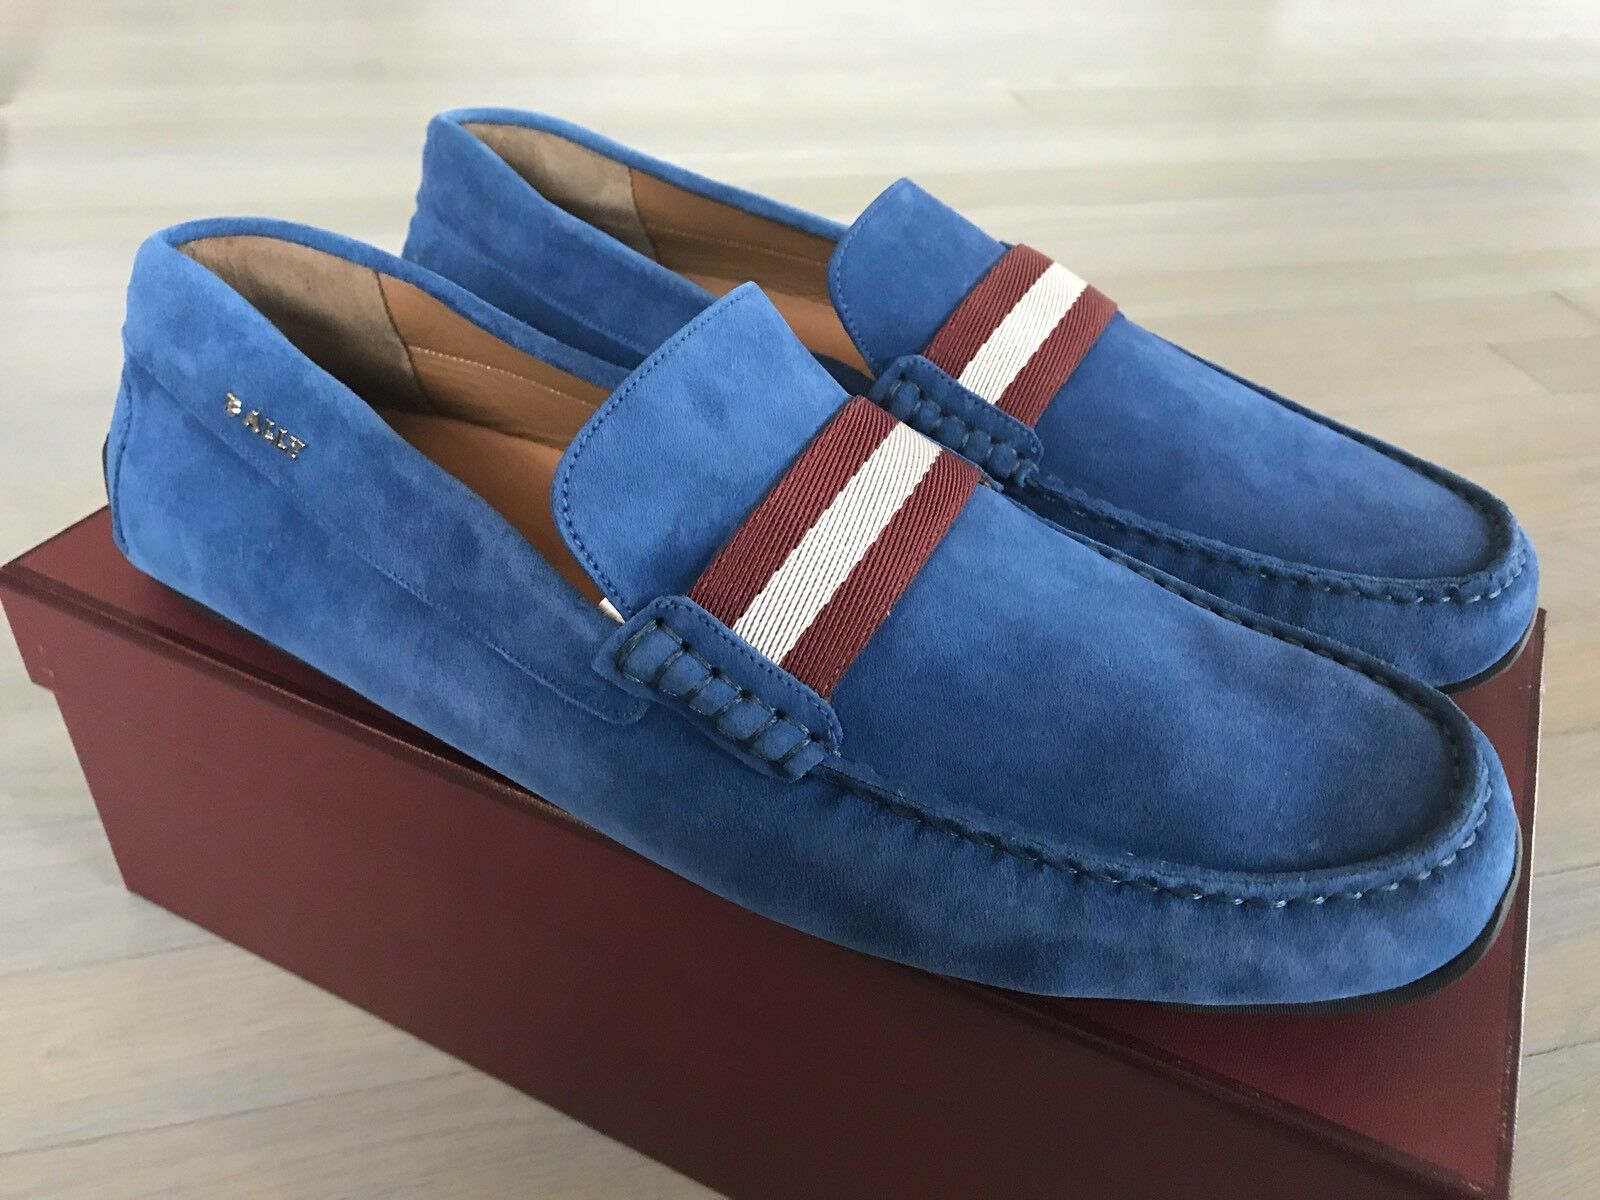 550$ Bally Pearce Prussian Blue Suede Driver Size US 12 Made in Italy